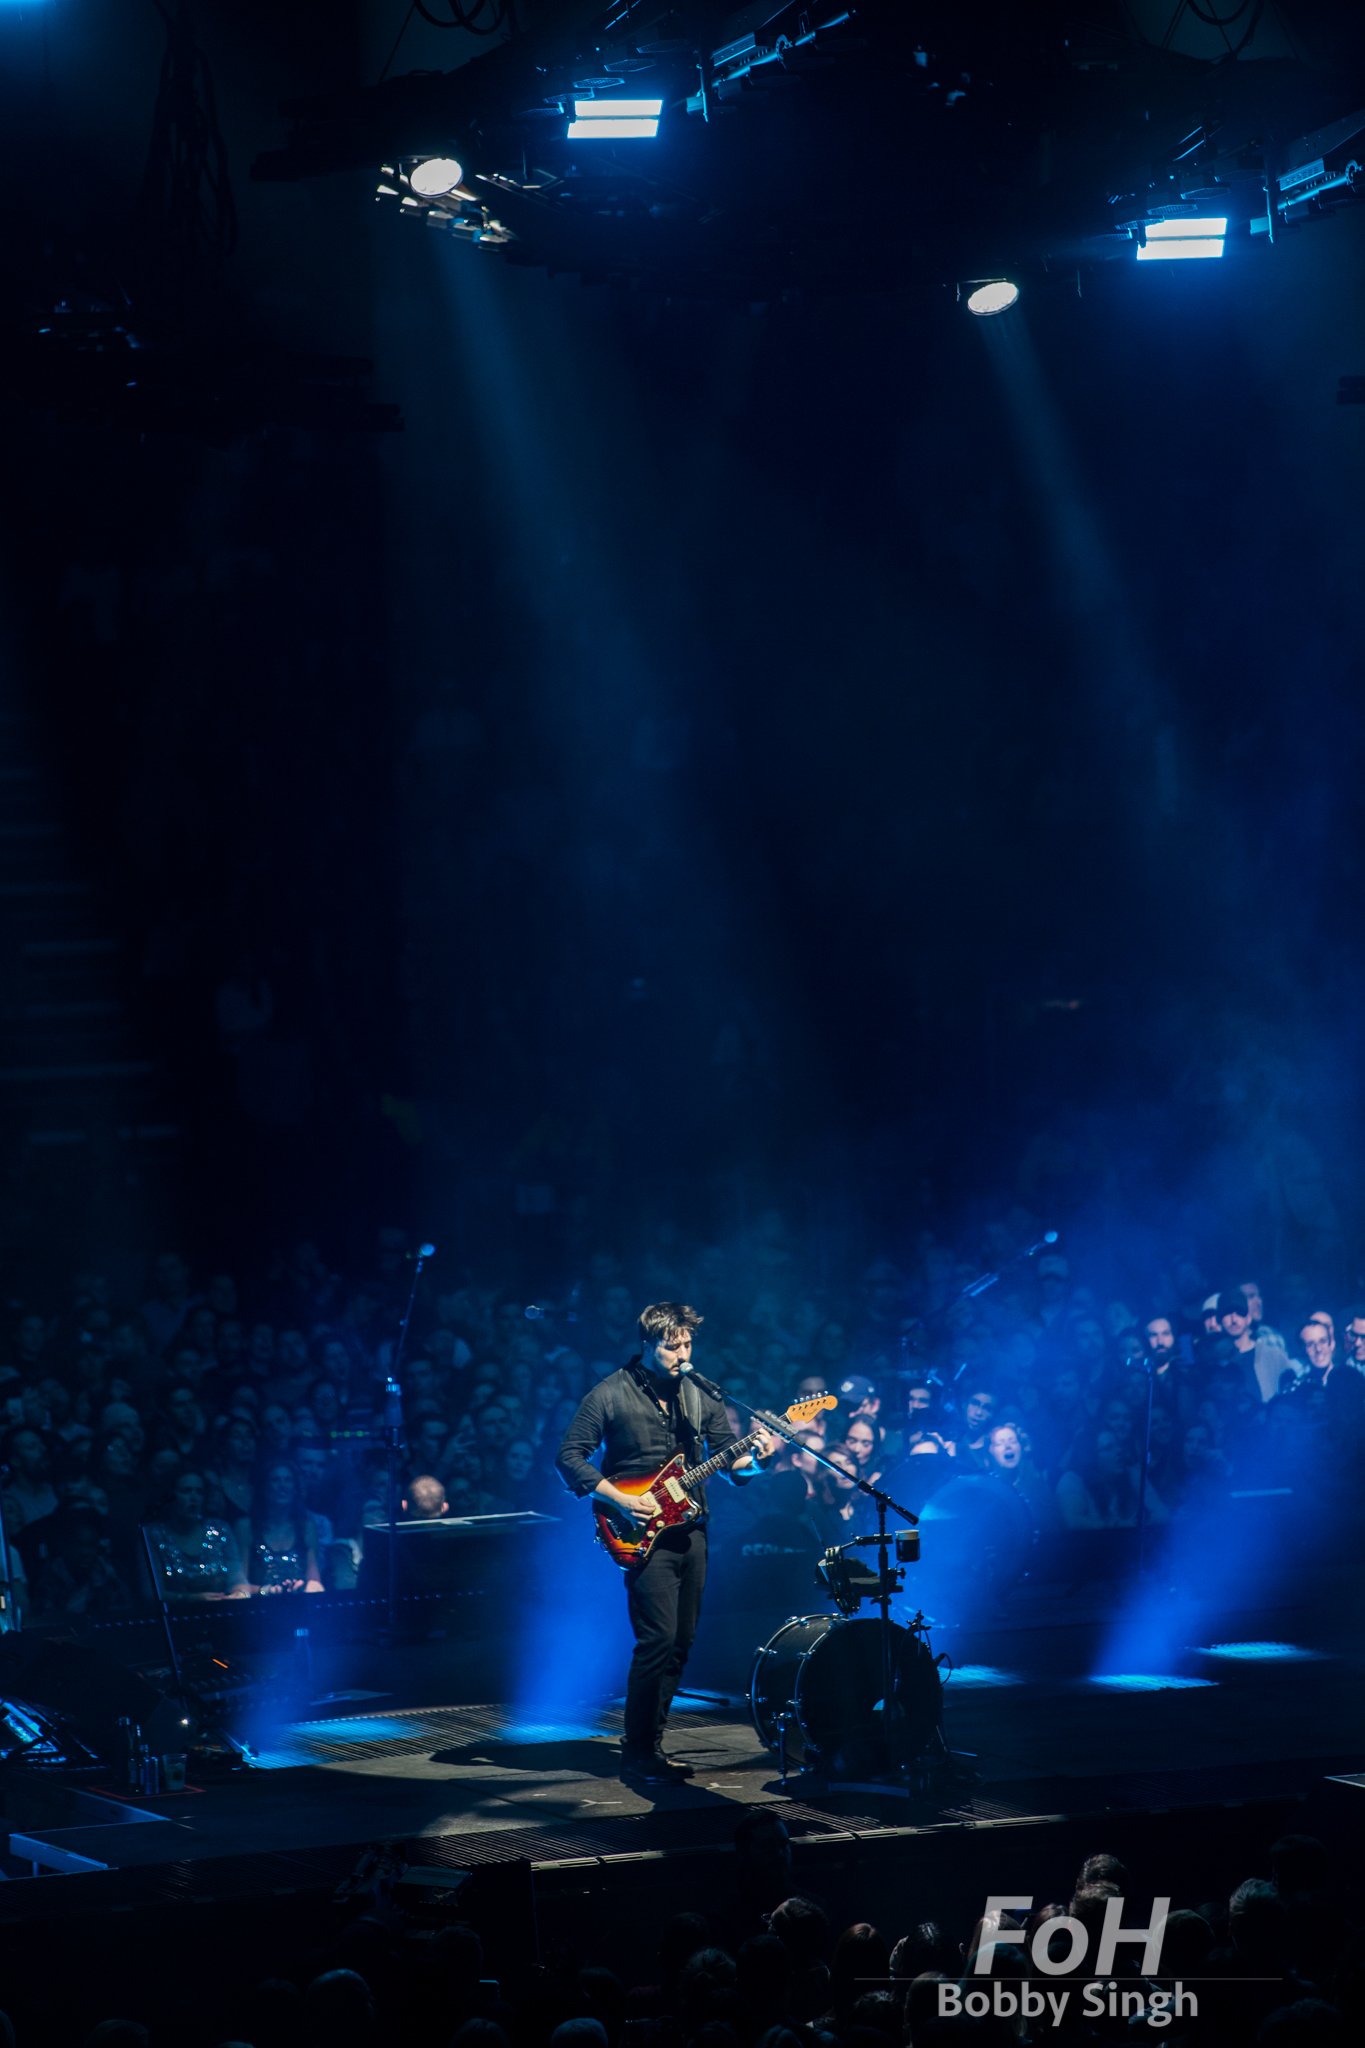 Mumford & Sons perform in Toronto. bobby Singh/@fohphoto